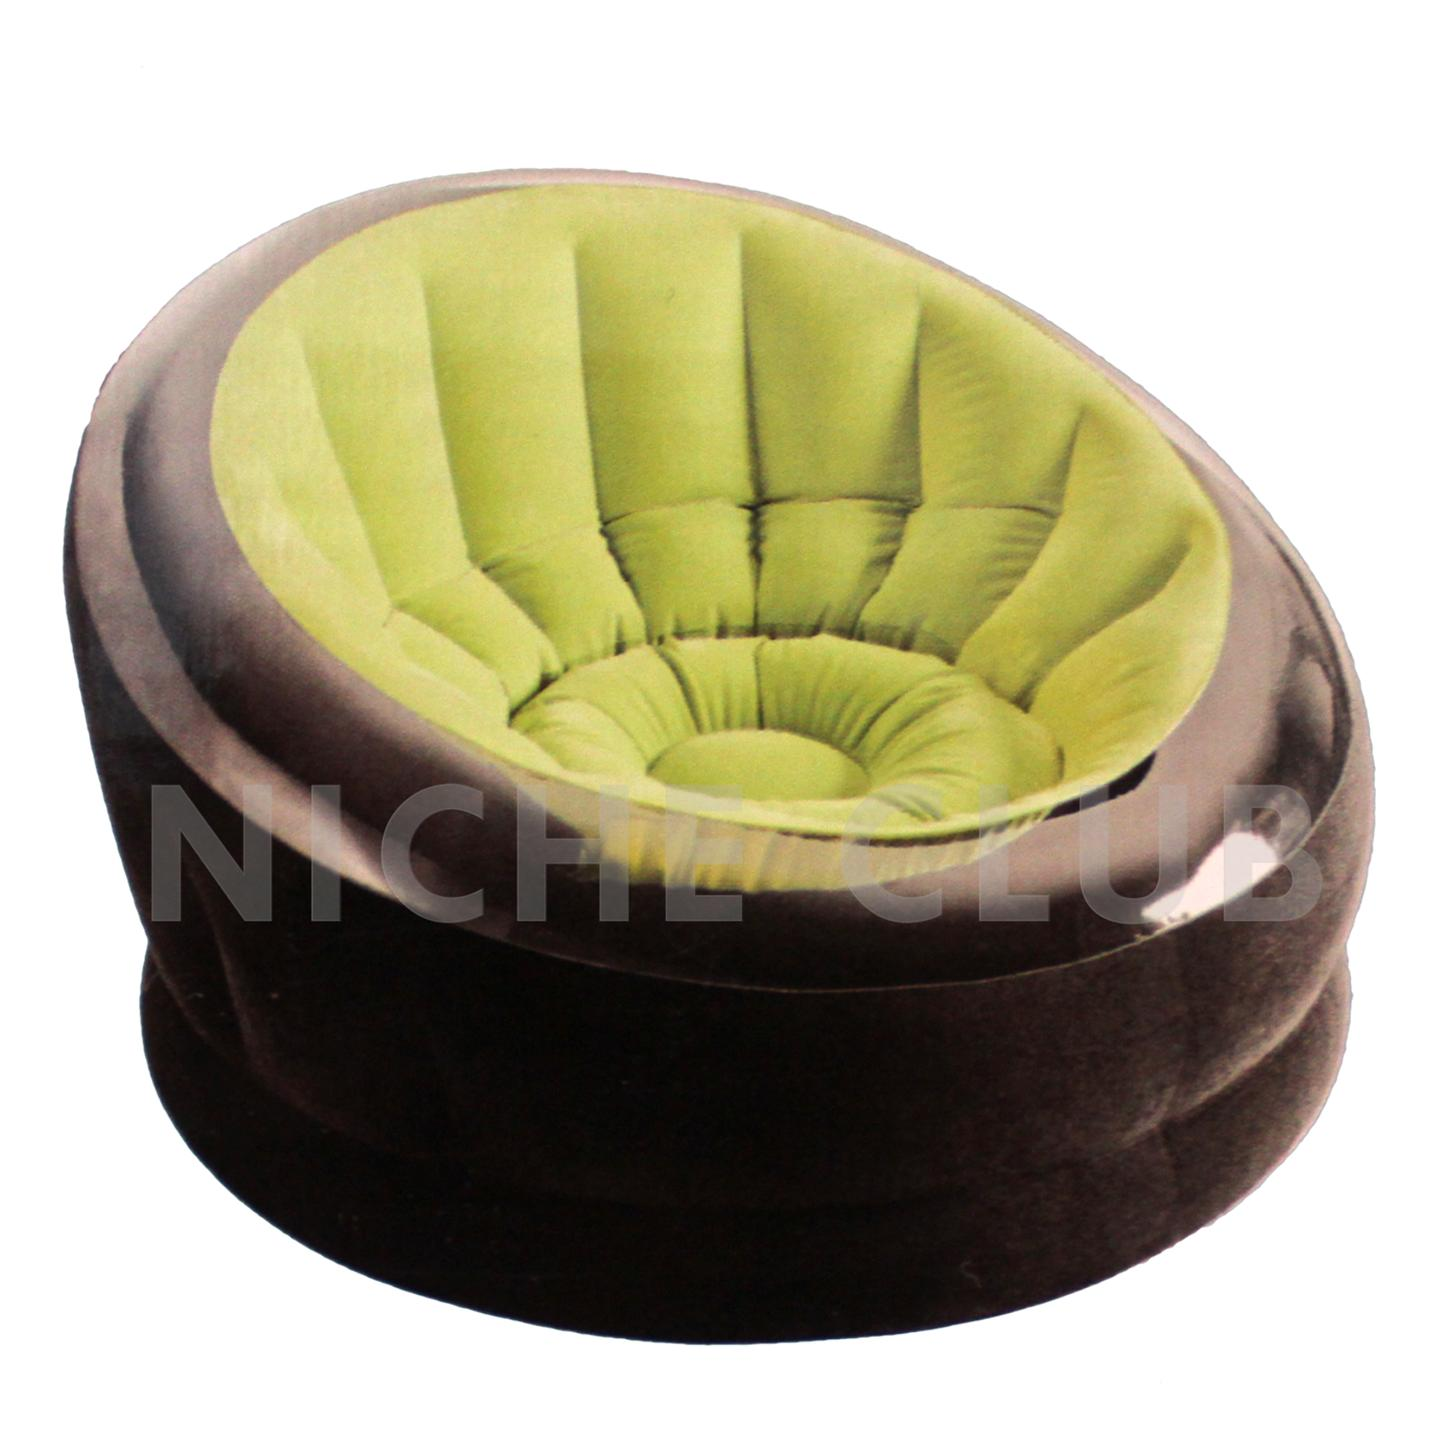 inflatable chair stool 4 less camping myideasbedroom